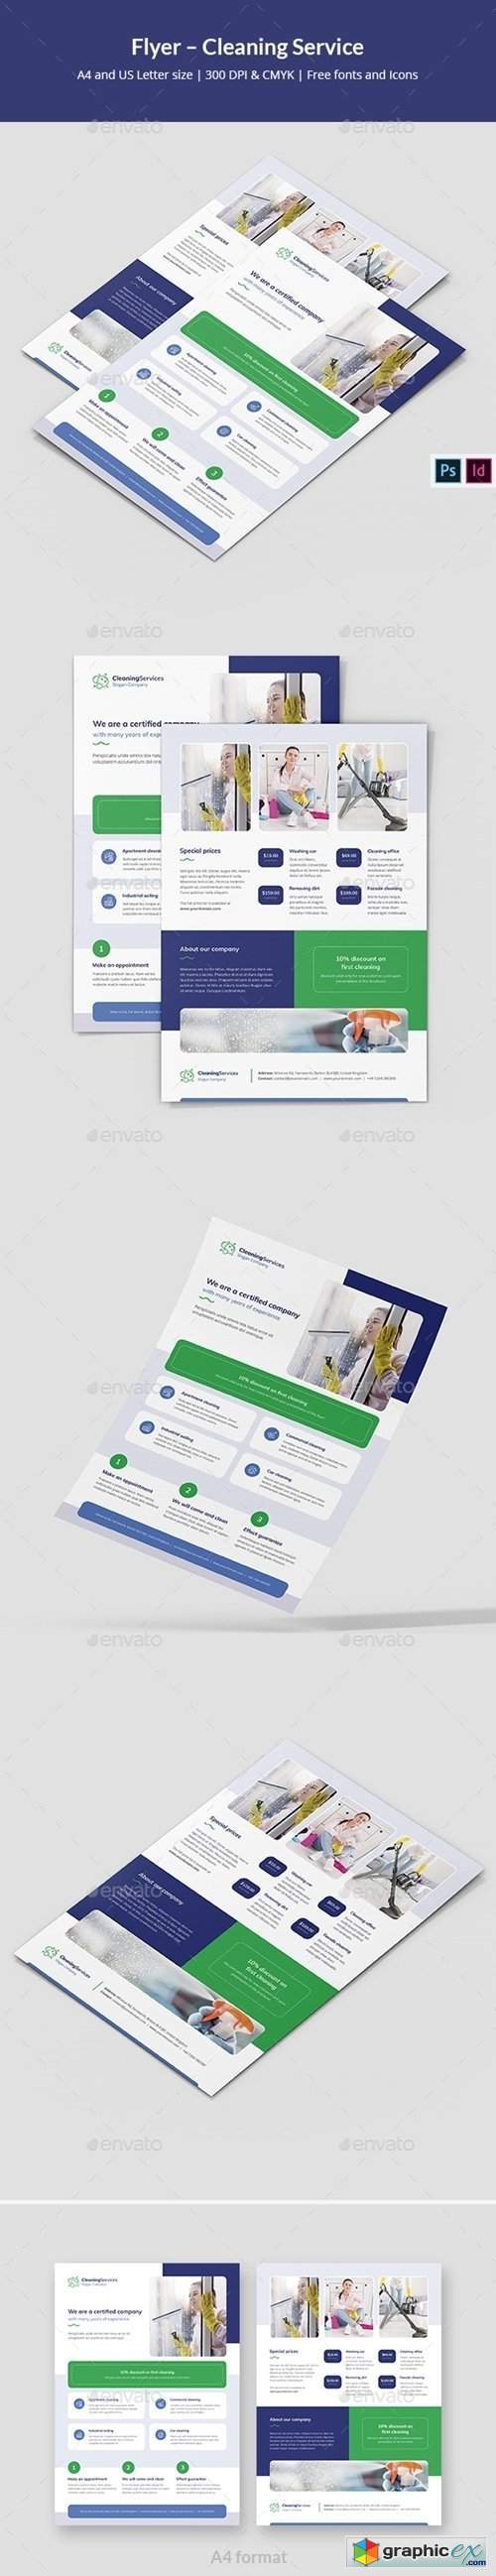 Flyer – Cleaning Service